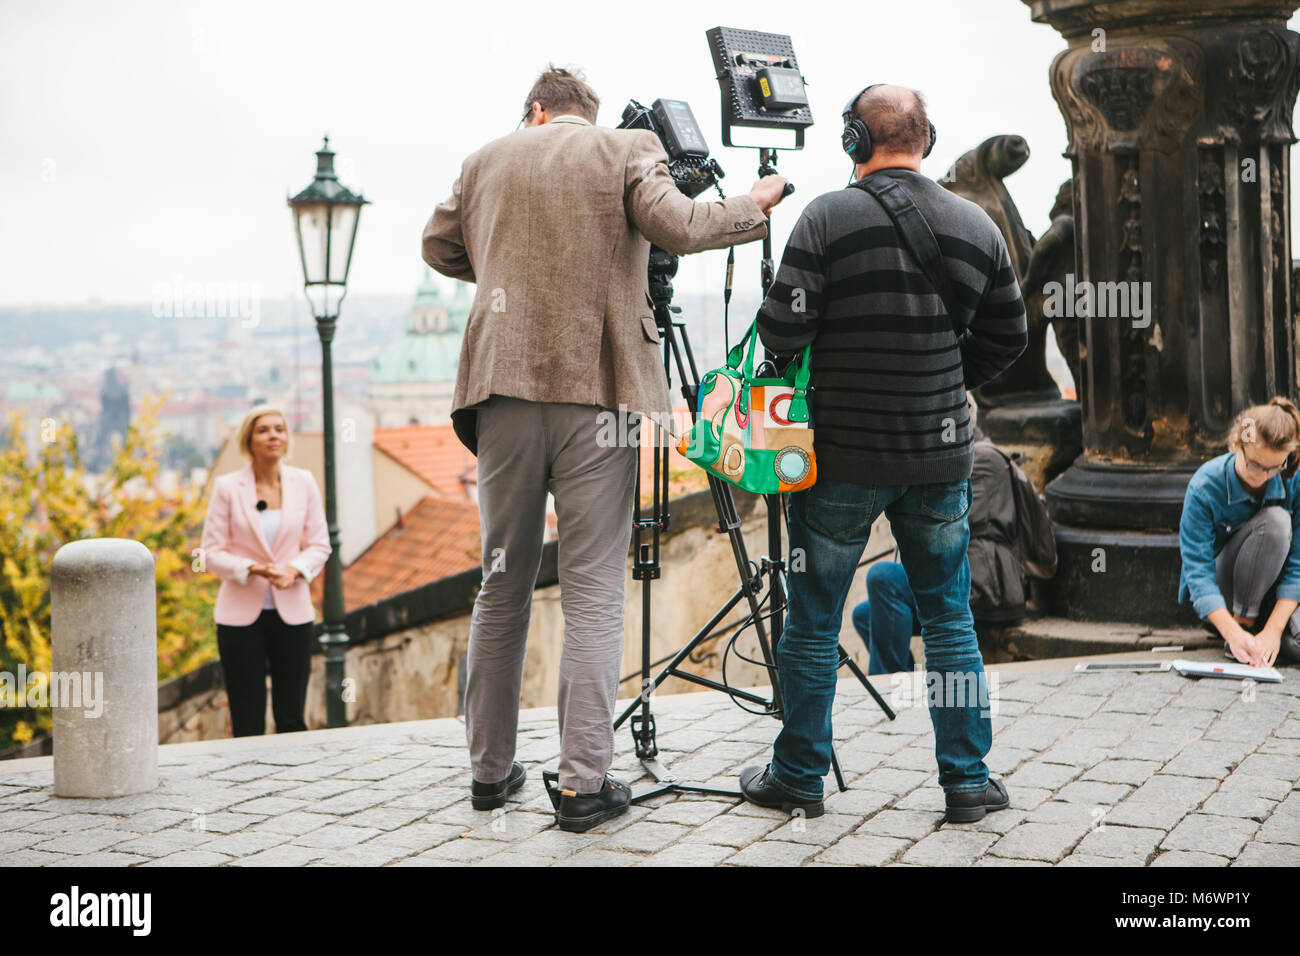 Prague, October 28, 2017: Team of operators and journalists shoot report next to the Prague Castle - Stock Image